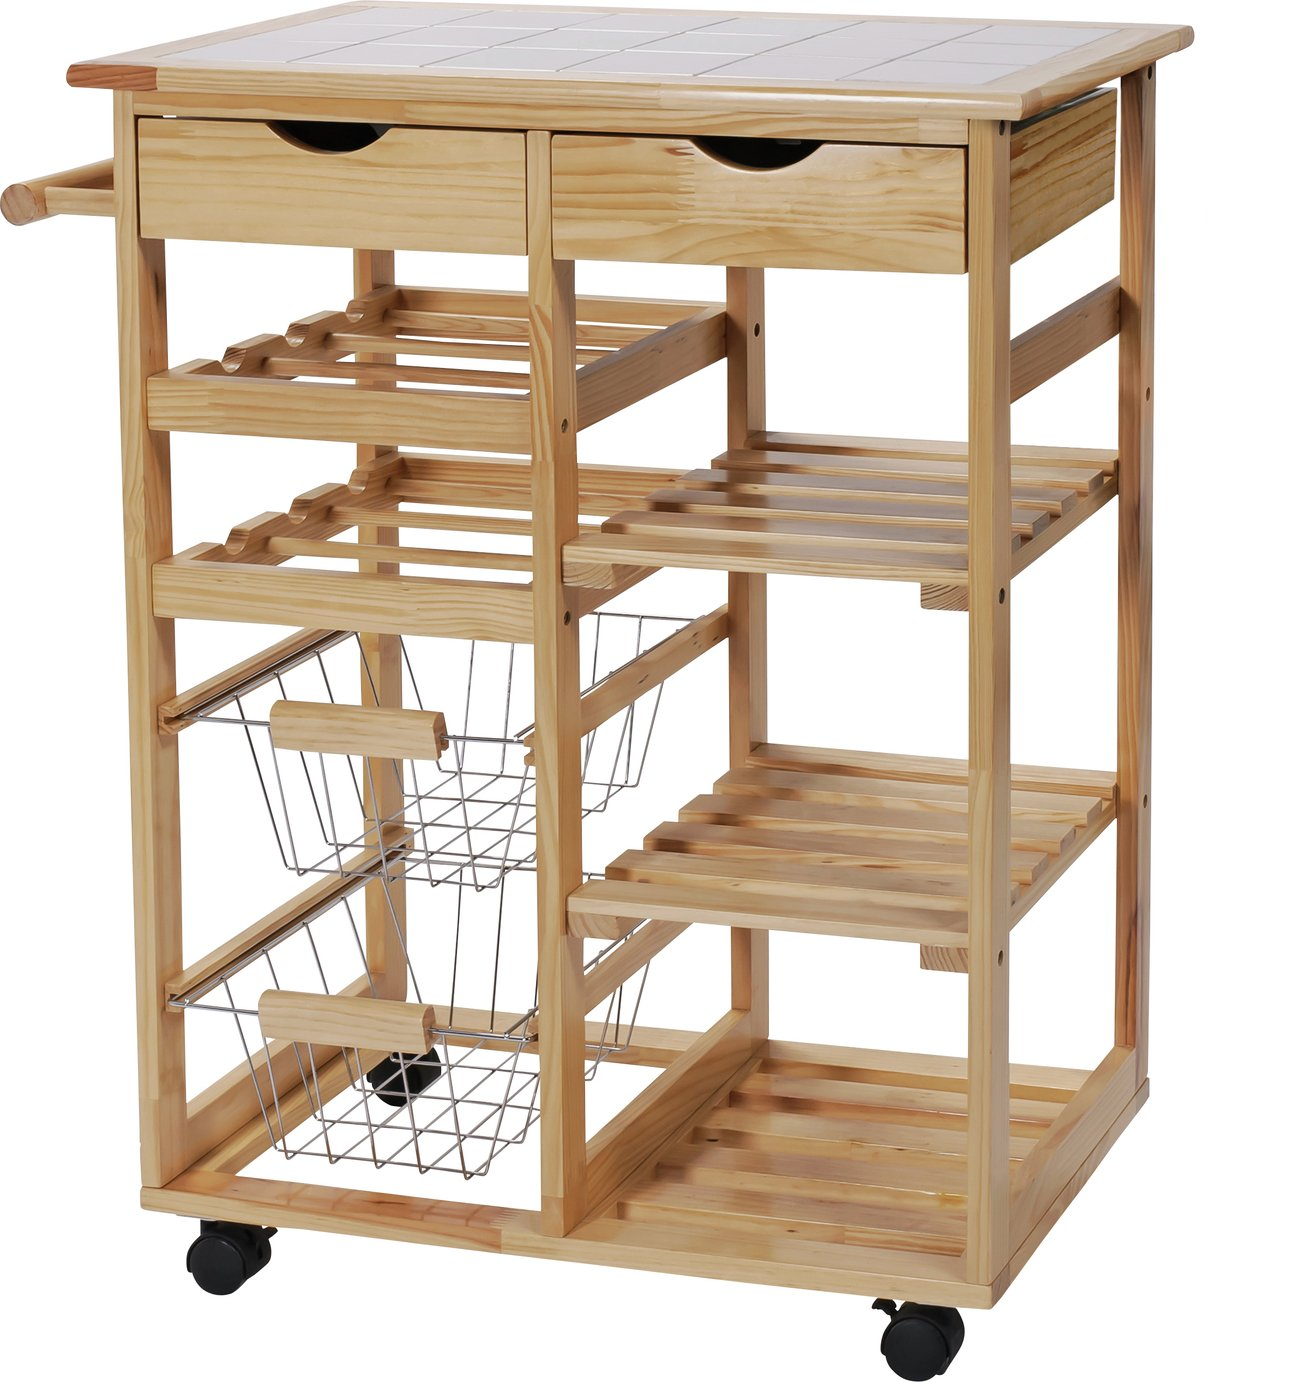 kitchen trolley travertine tile for backsplash in trolleys vegetable hostess argos home pine top